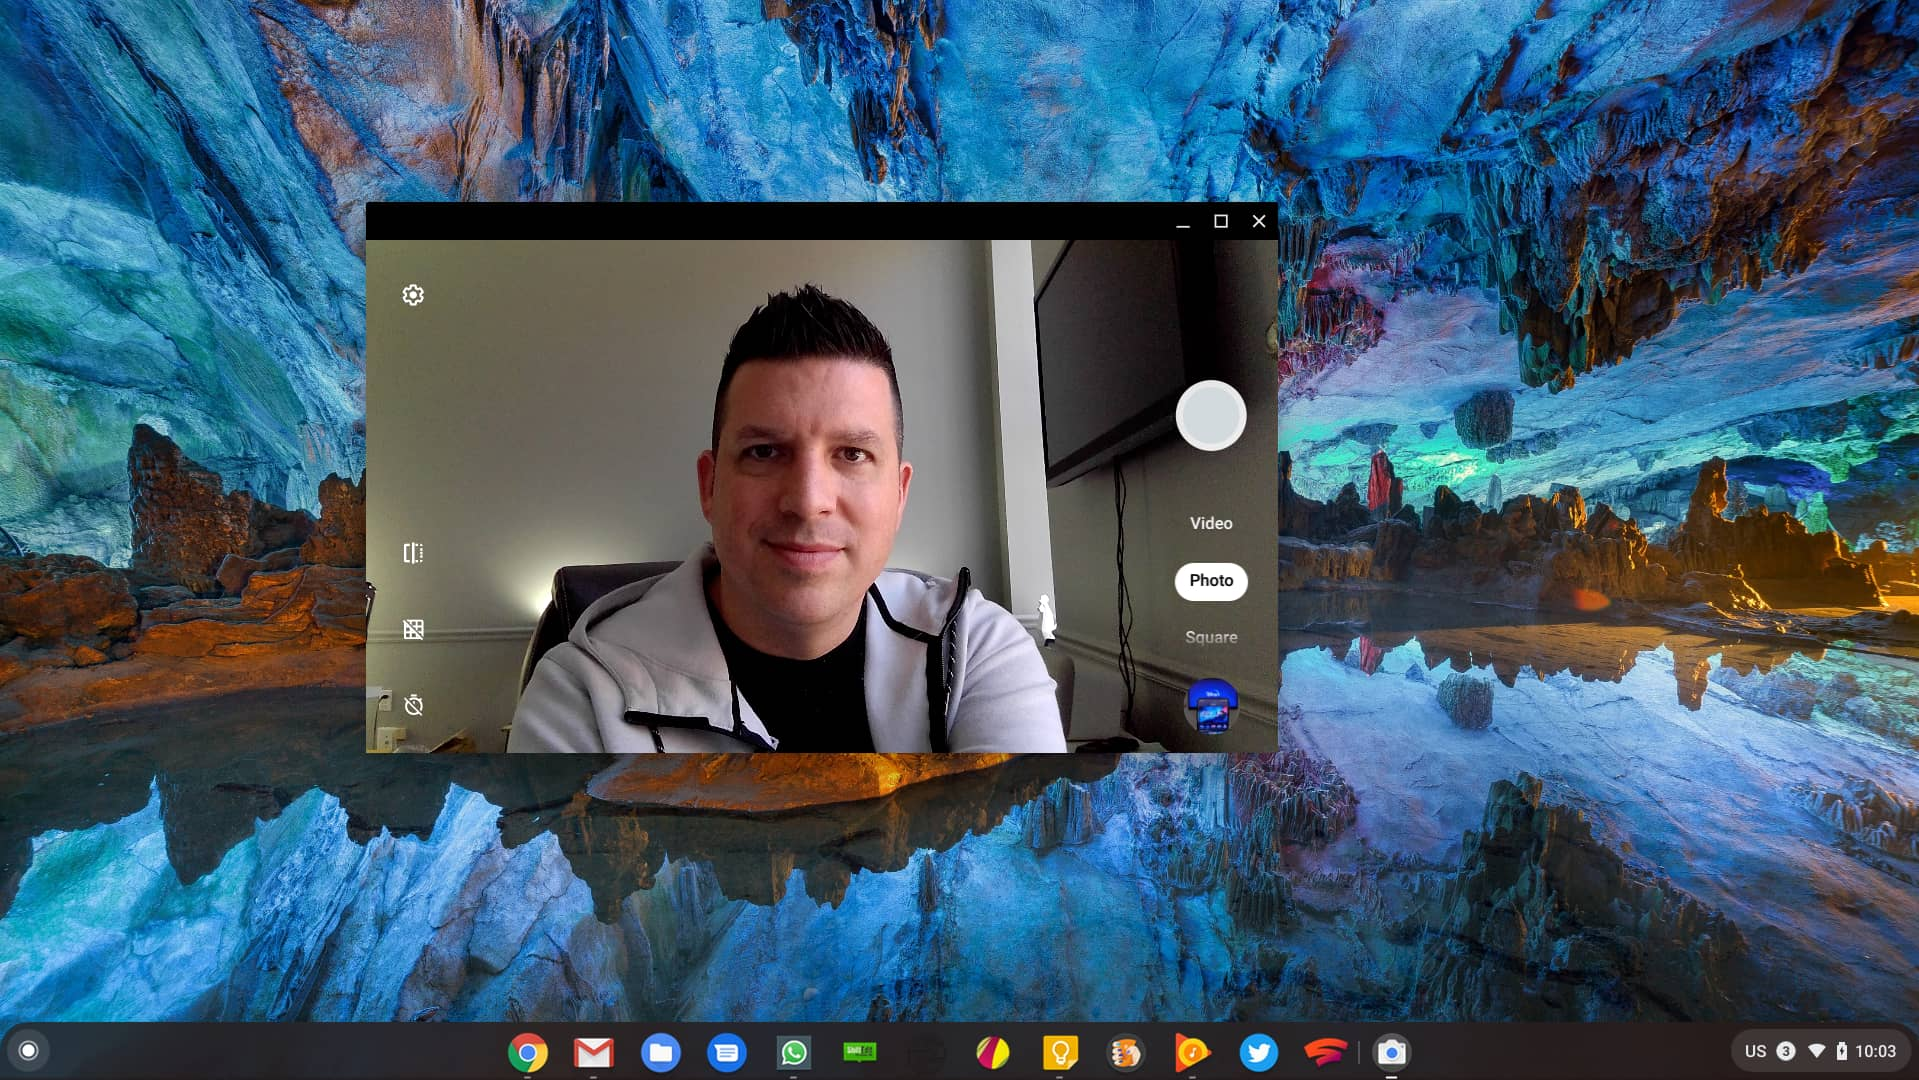 Chromebook cameras being tested with more advanced imaging options for better video chats